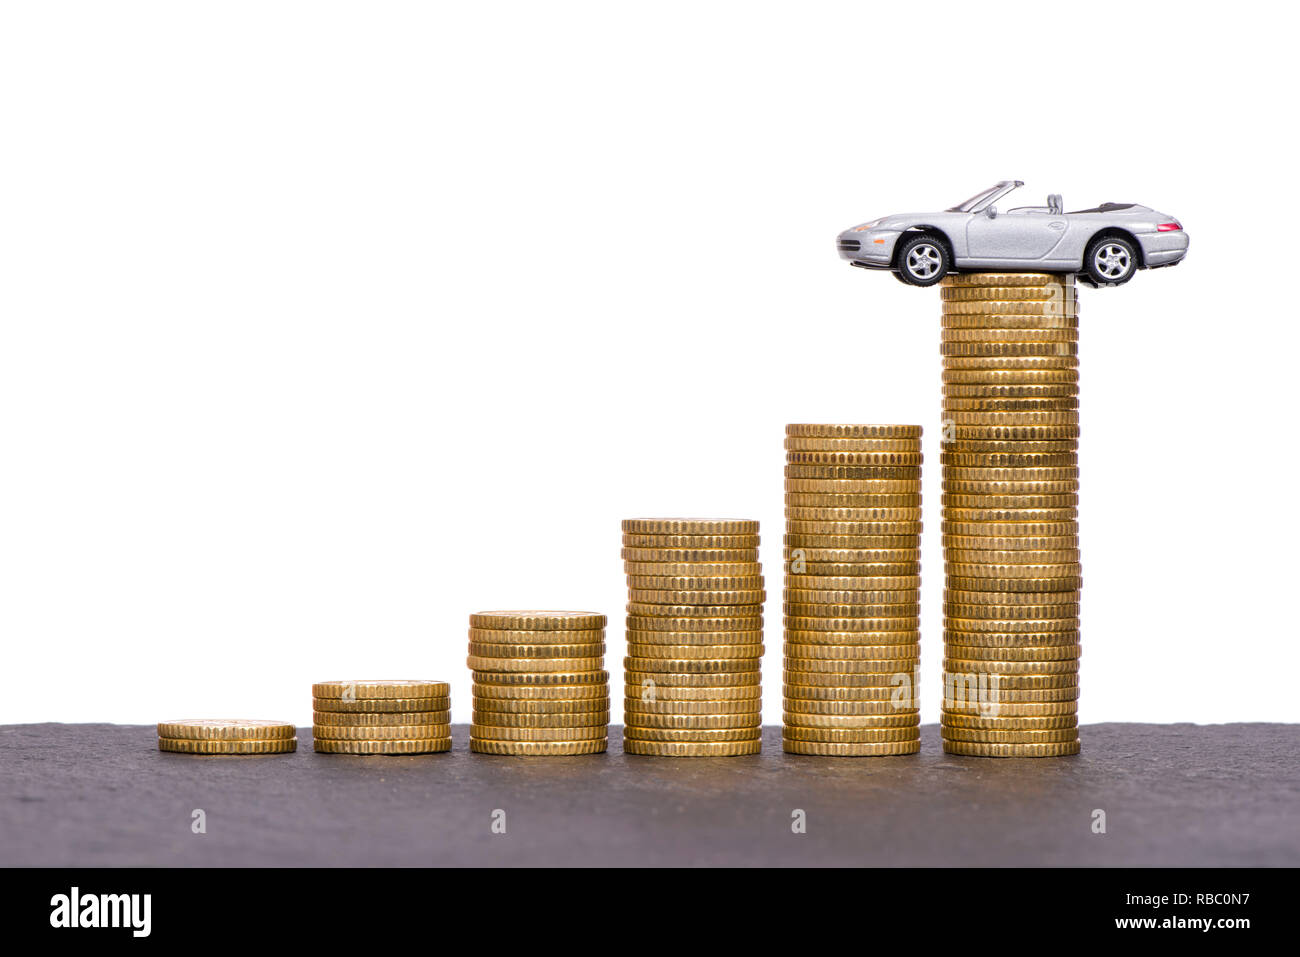 chart of Euro coins with car on top - Stock Image